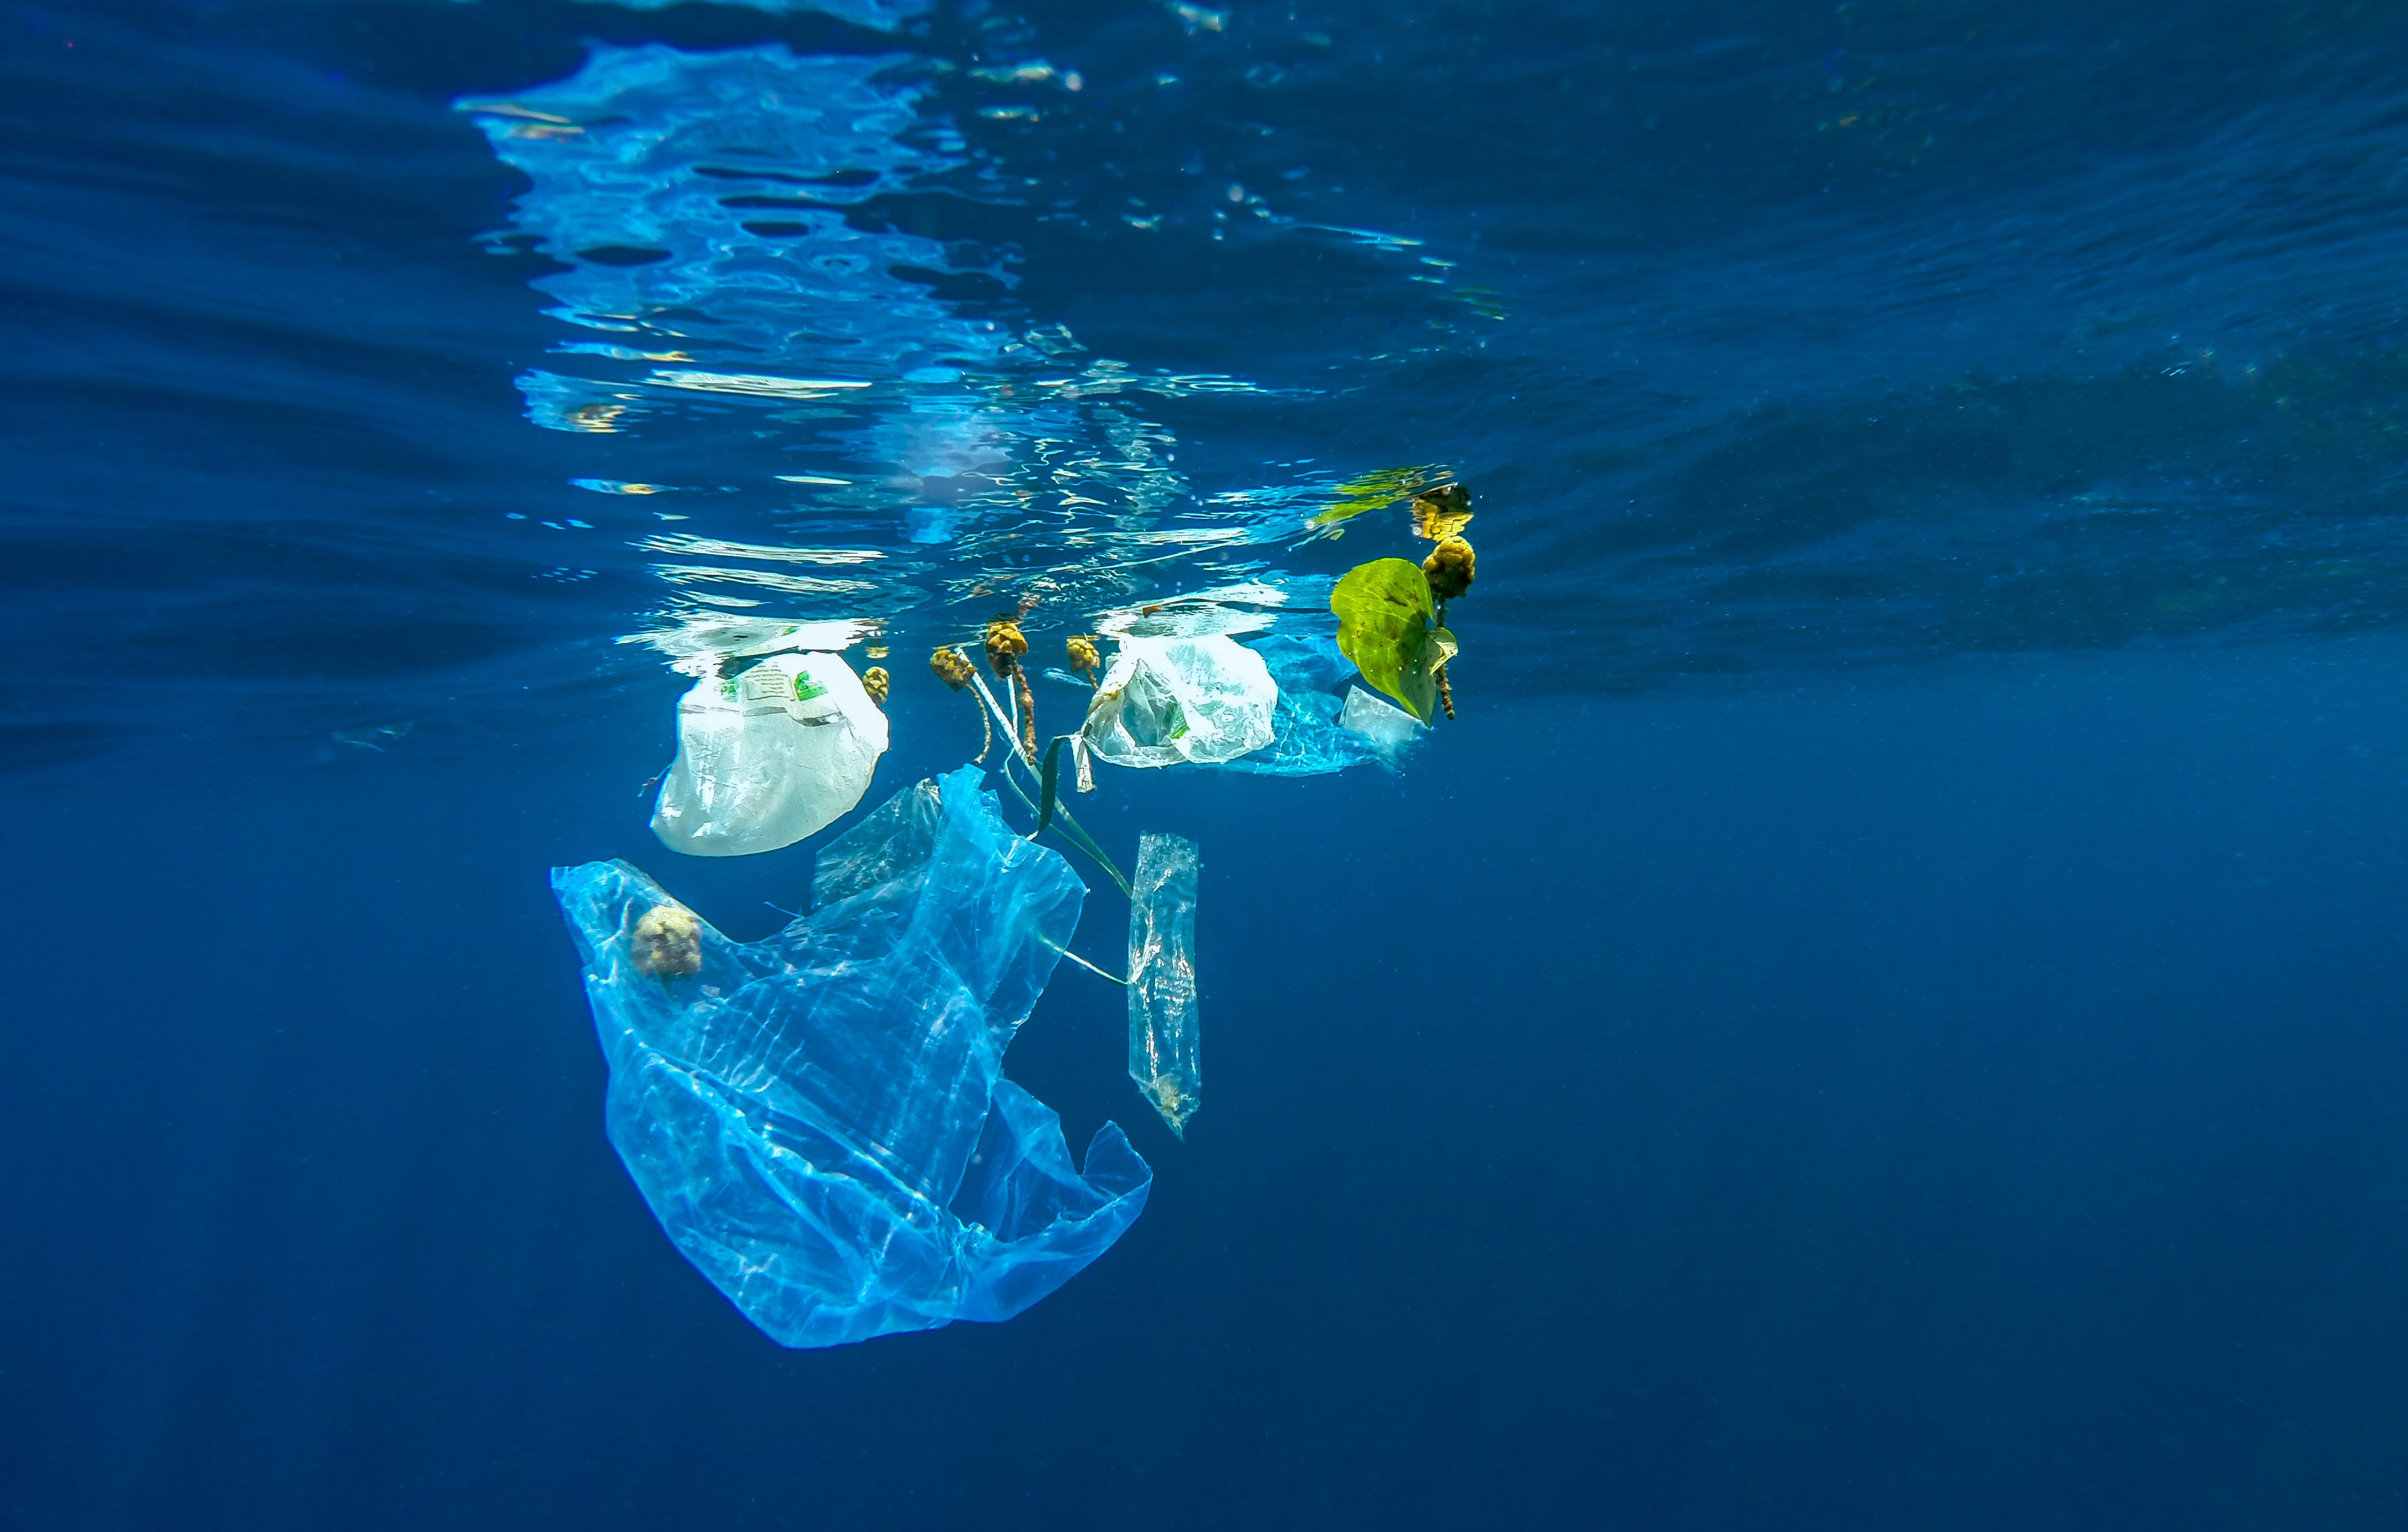 Circular Cleanup - new project for a cleaner ocean